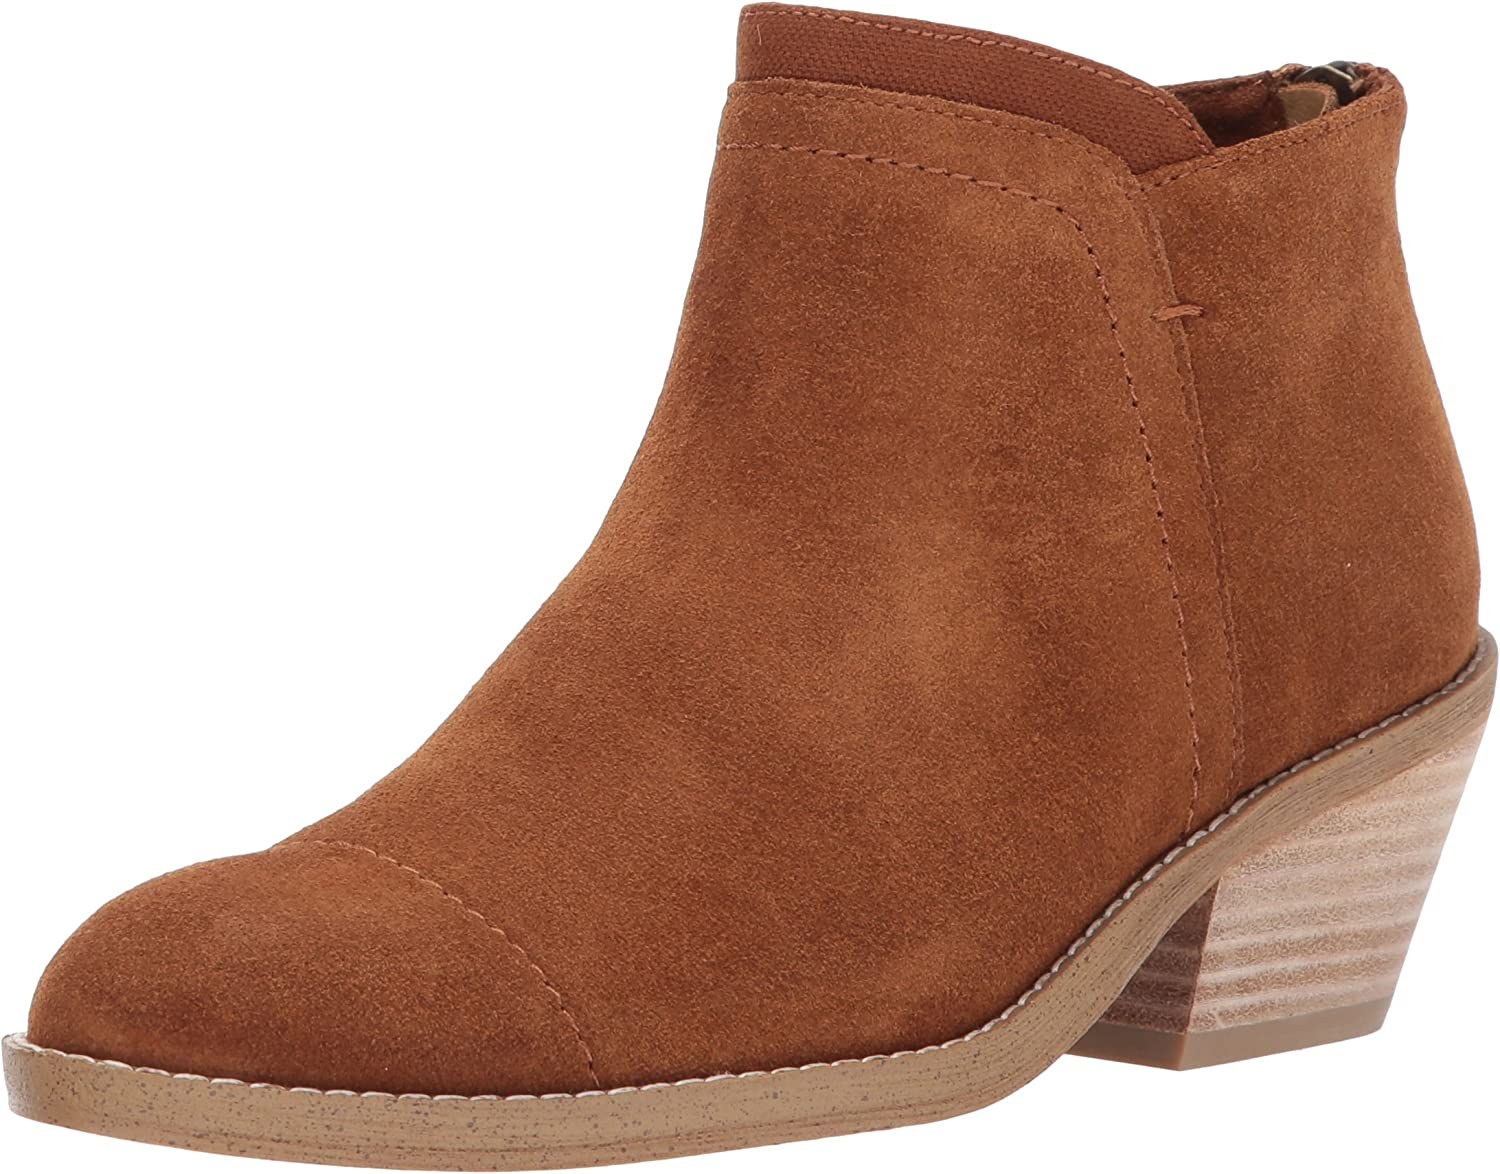 Splendid Womens Dale Ankle Boot